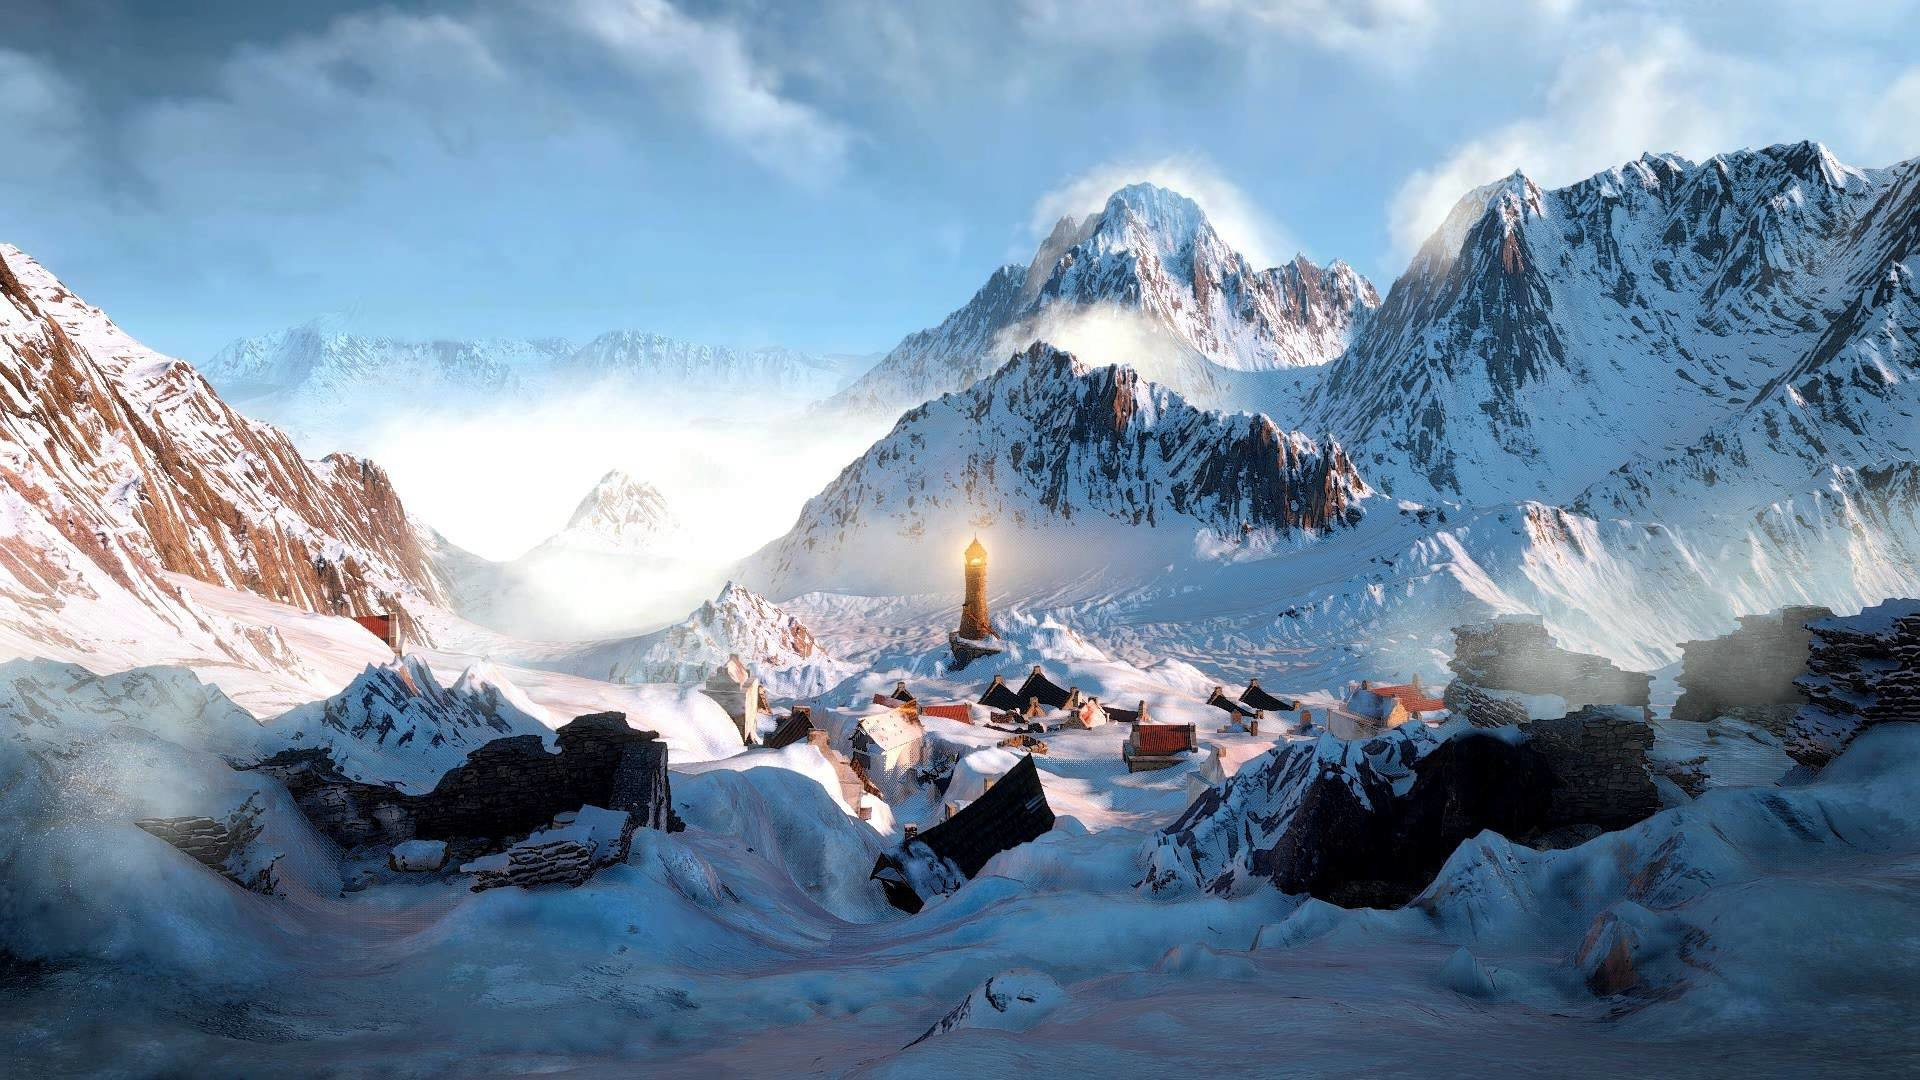 Hd animated wallpaper 62 images - Moving wallpaper hd ...